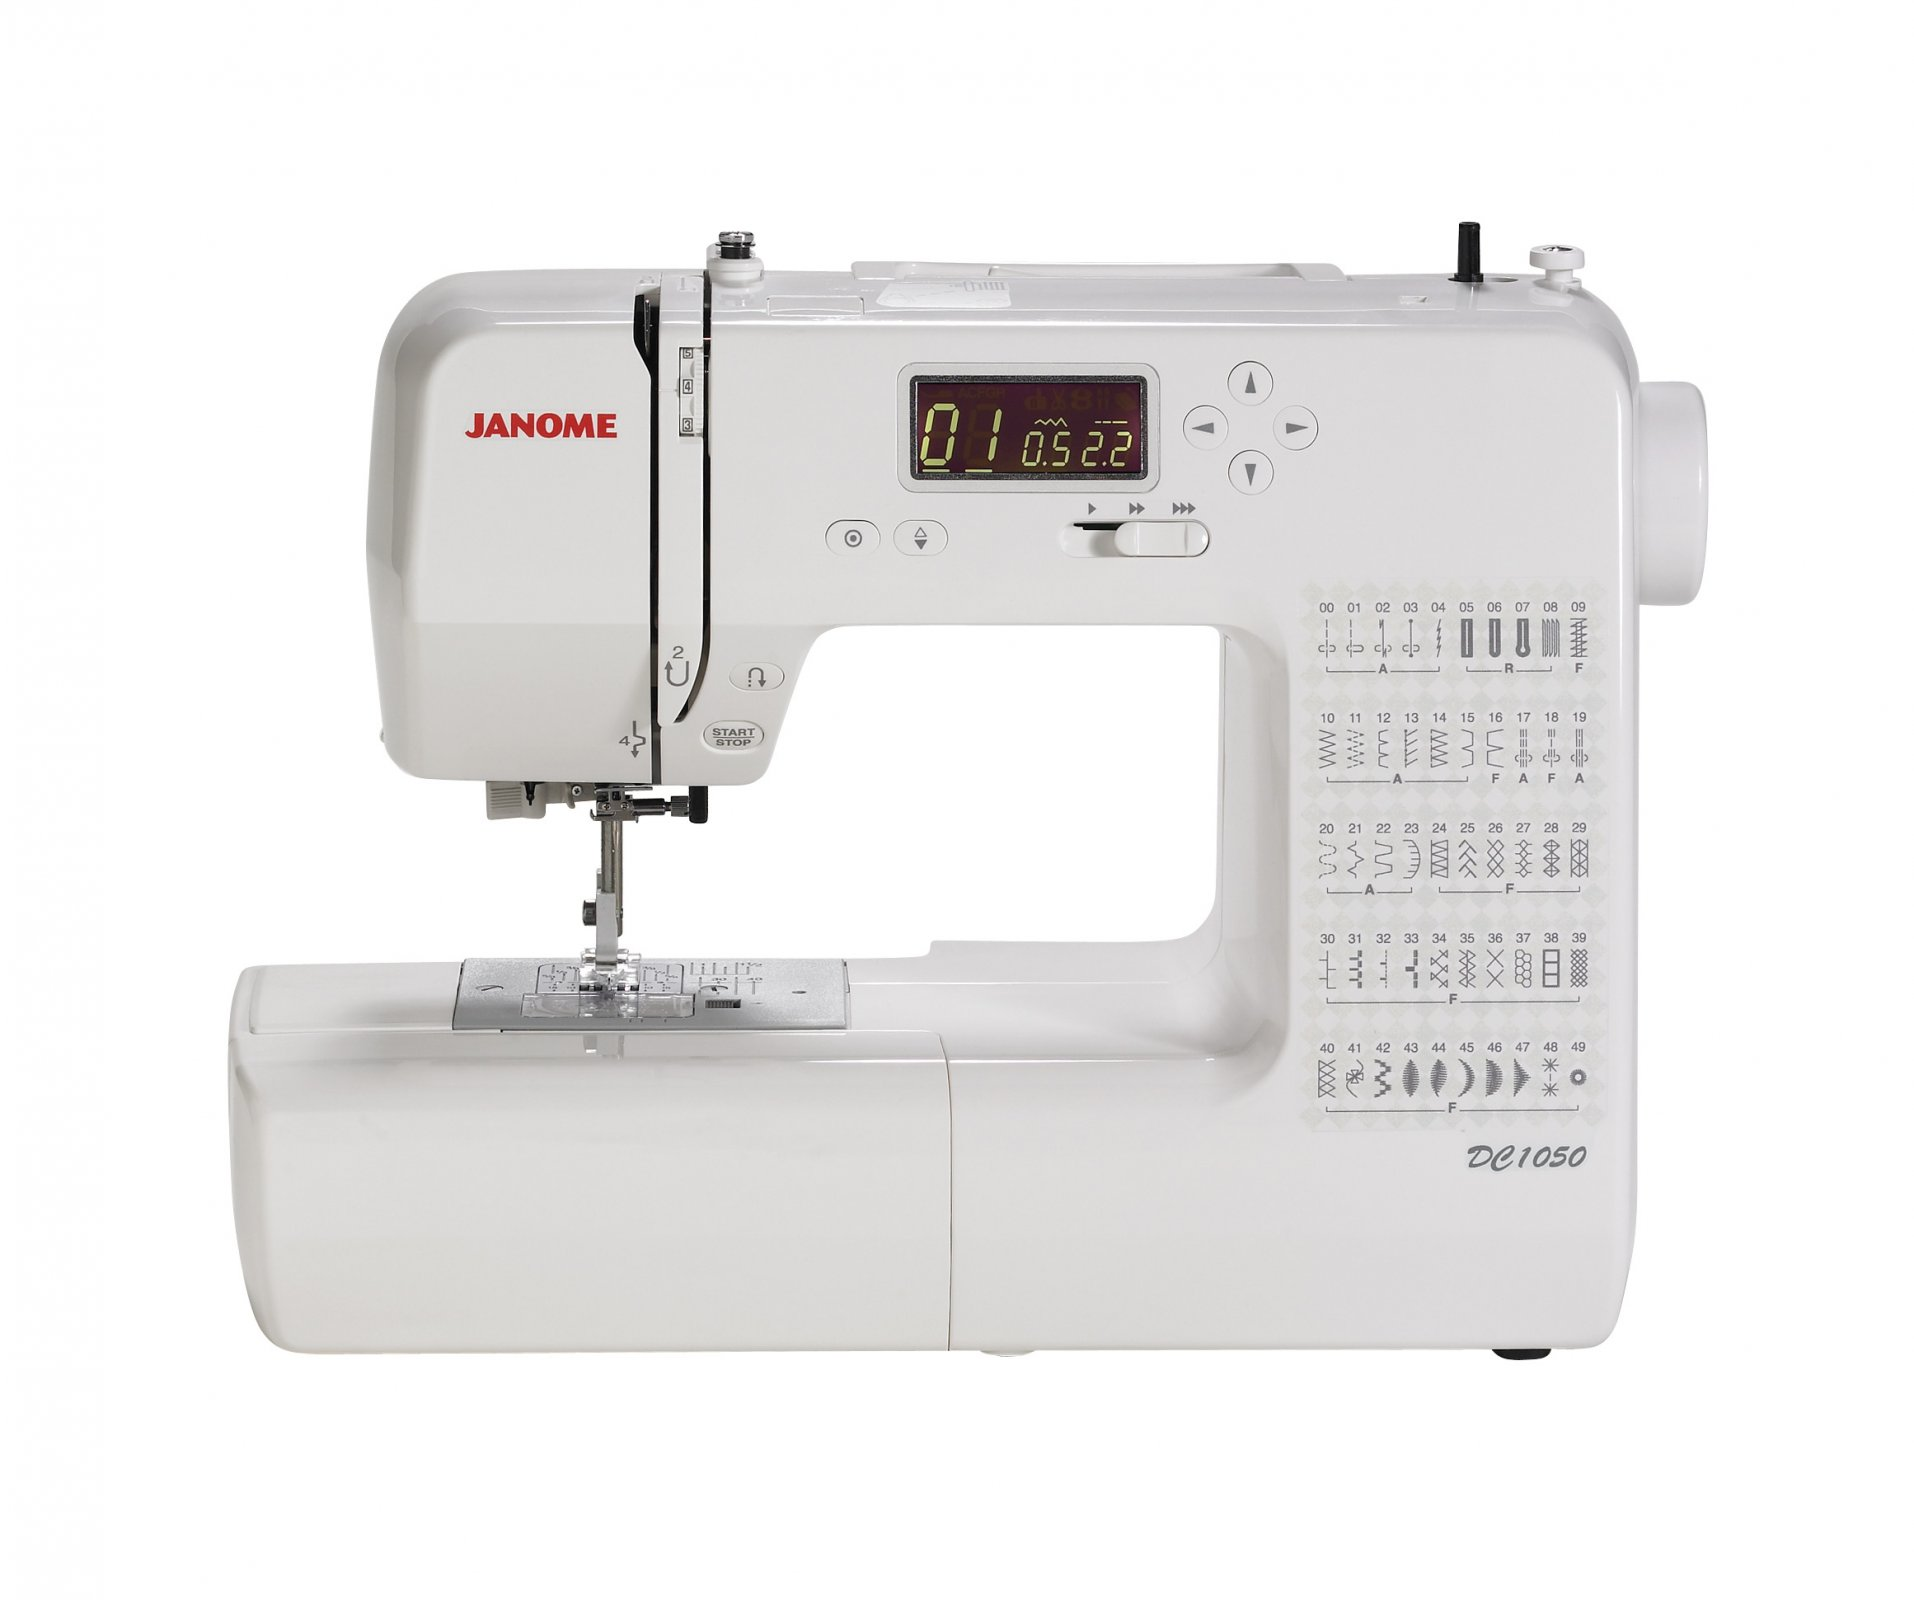 Janome DC1050 Electronic Sewing Machine